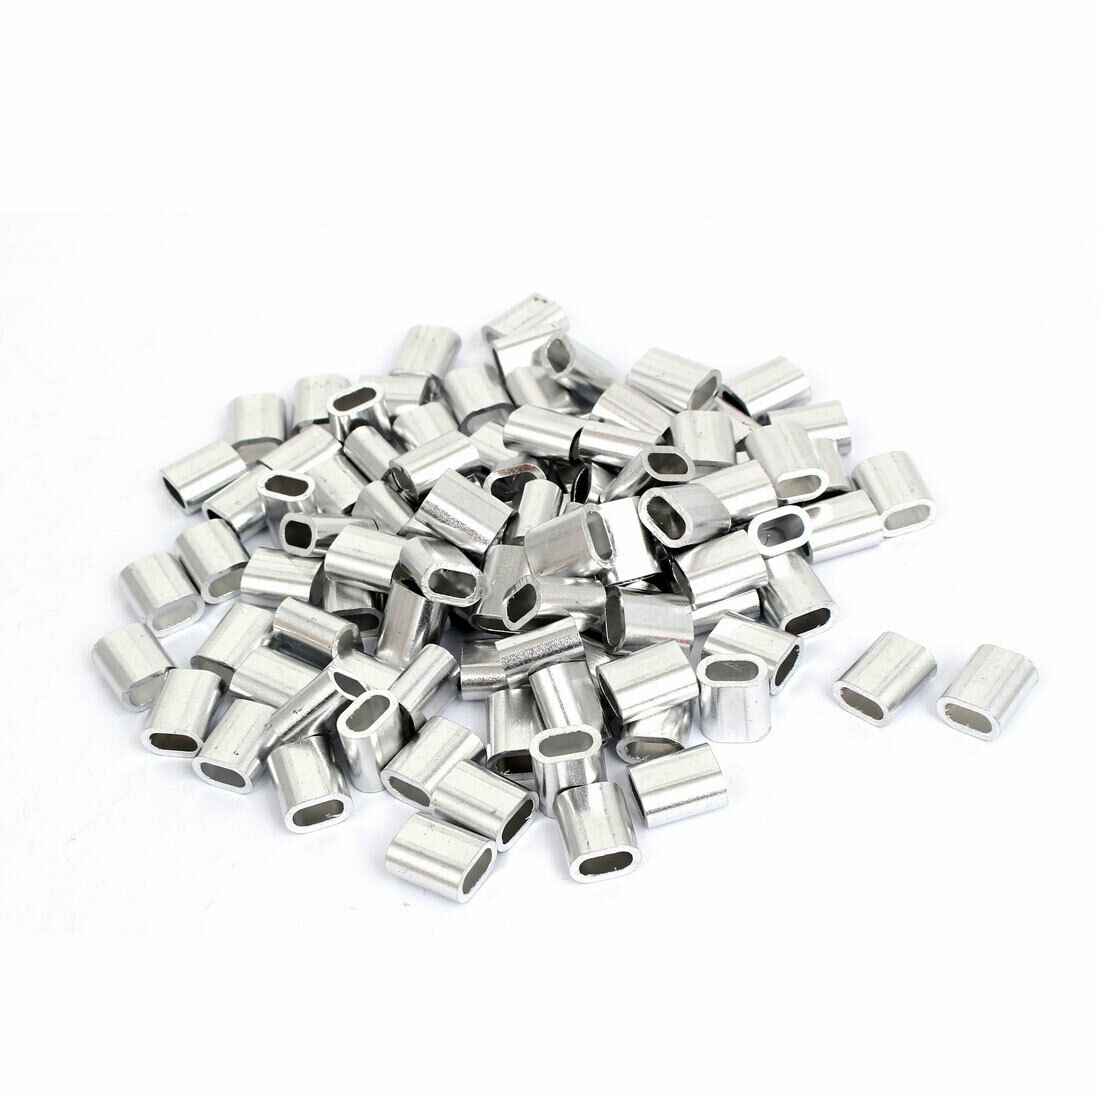 100PCS M4 OVAL Aluminum Sleeves Clamps for 4mm Wire Rope Swage Clip ...